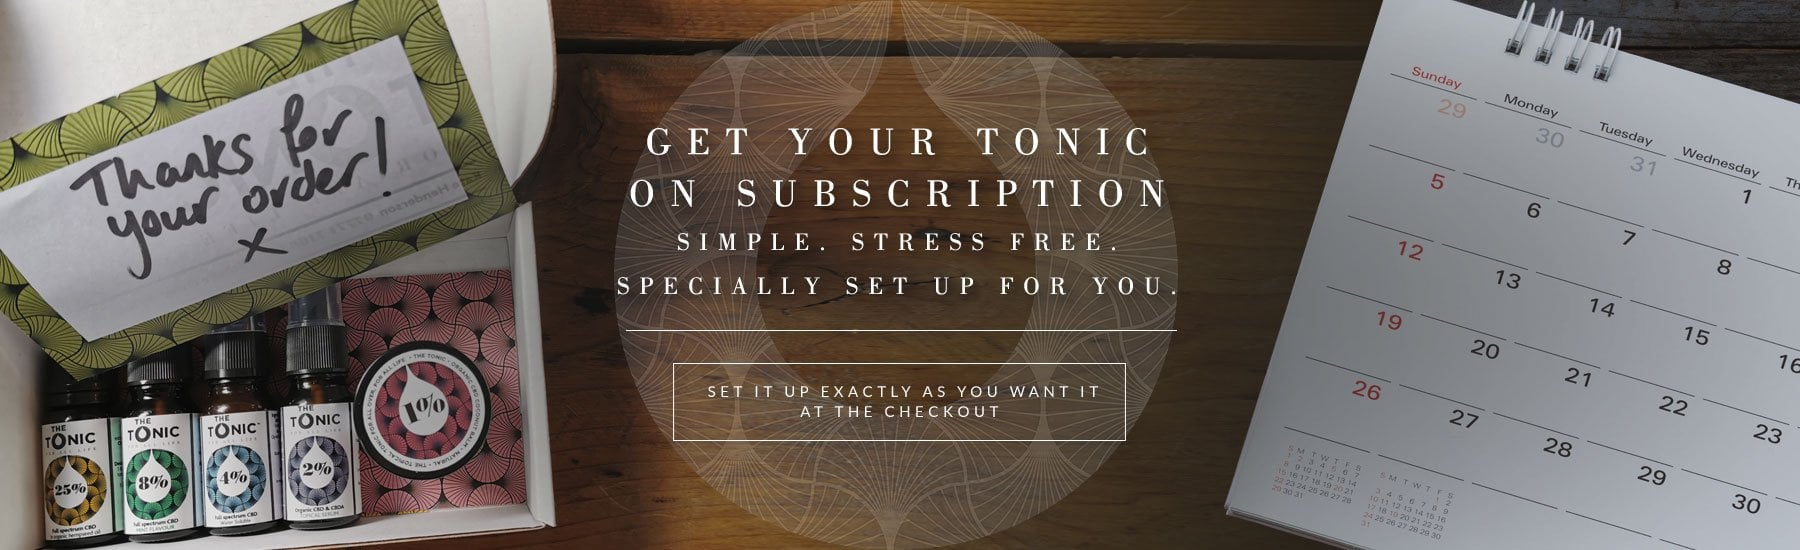 The Tonic Tribe - Main Banner - Subscribe and Save - CBD